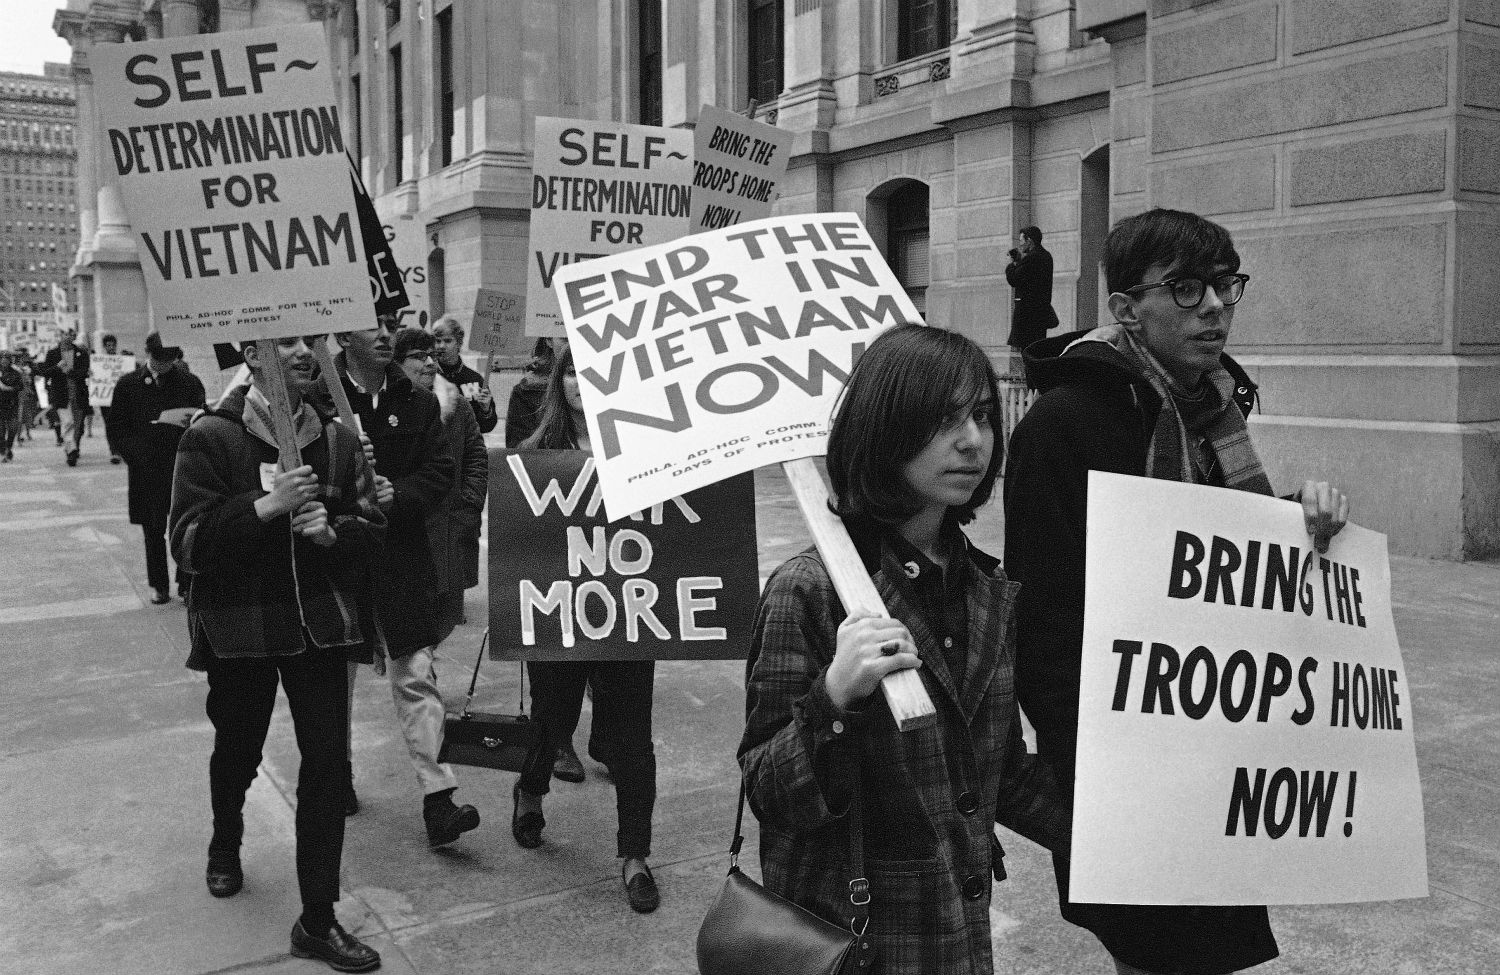 anti war movement in the united states Opposition to united states involvement in the vietnam war began with demonstrations in 1964 against the escalating role of the us military in the vietnam war and grew into a broad social movement over the ensuing several years.